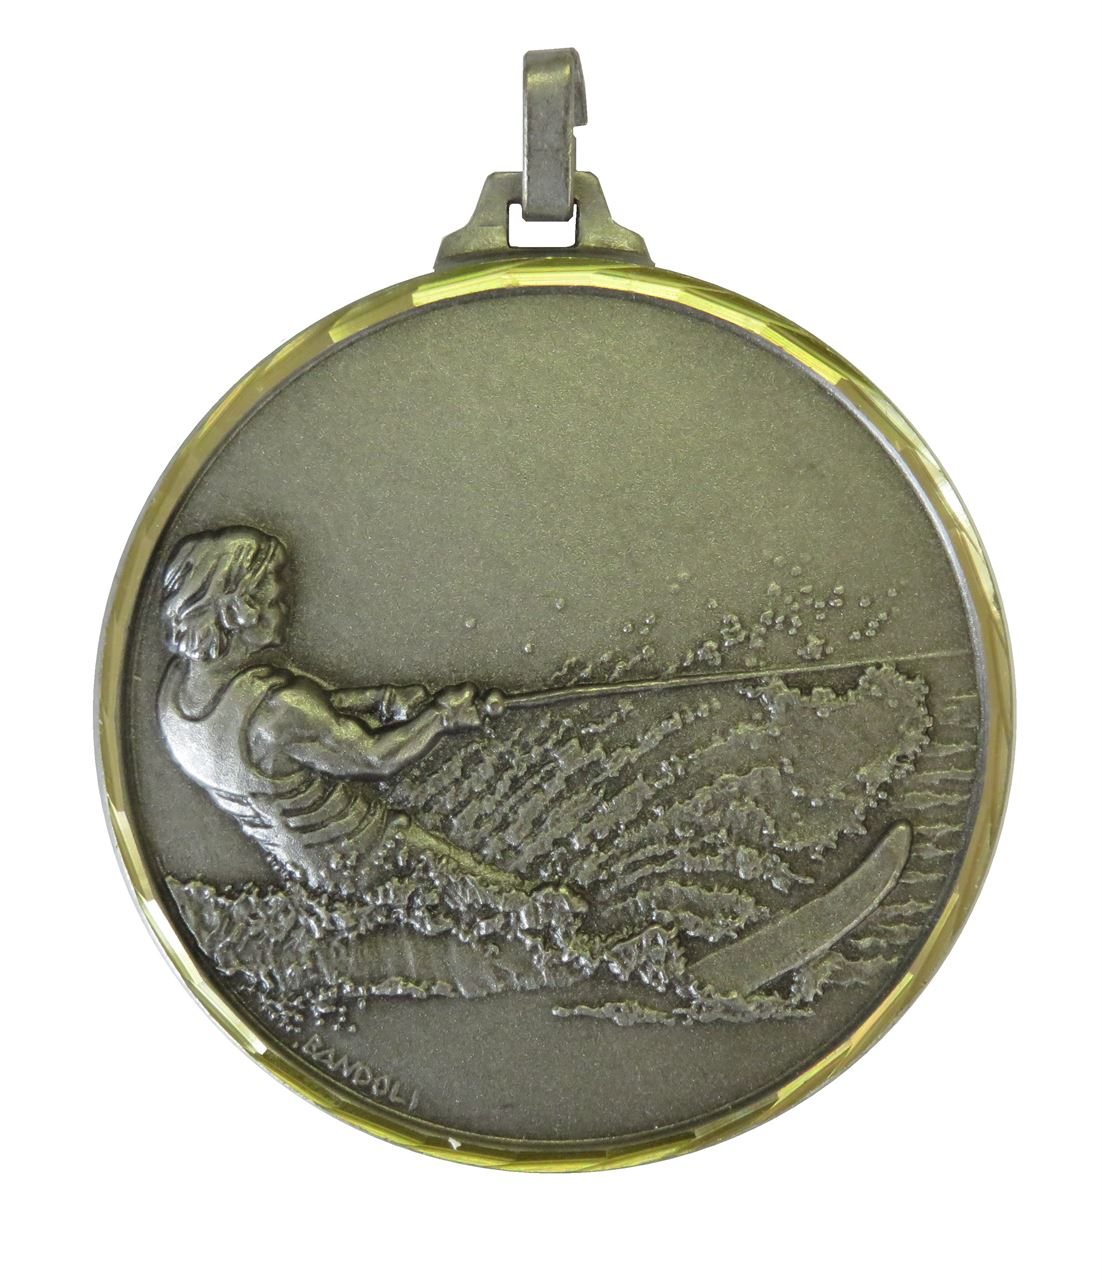 Silver Faceted Water Skiing Medal (size: 52mm) - 319F